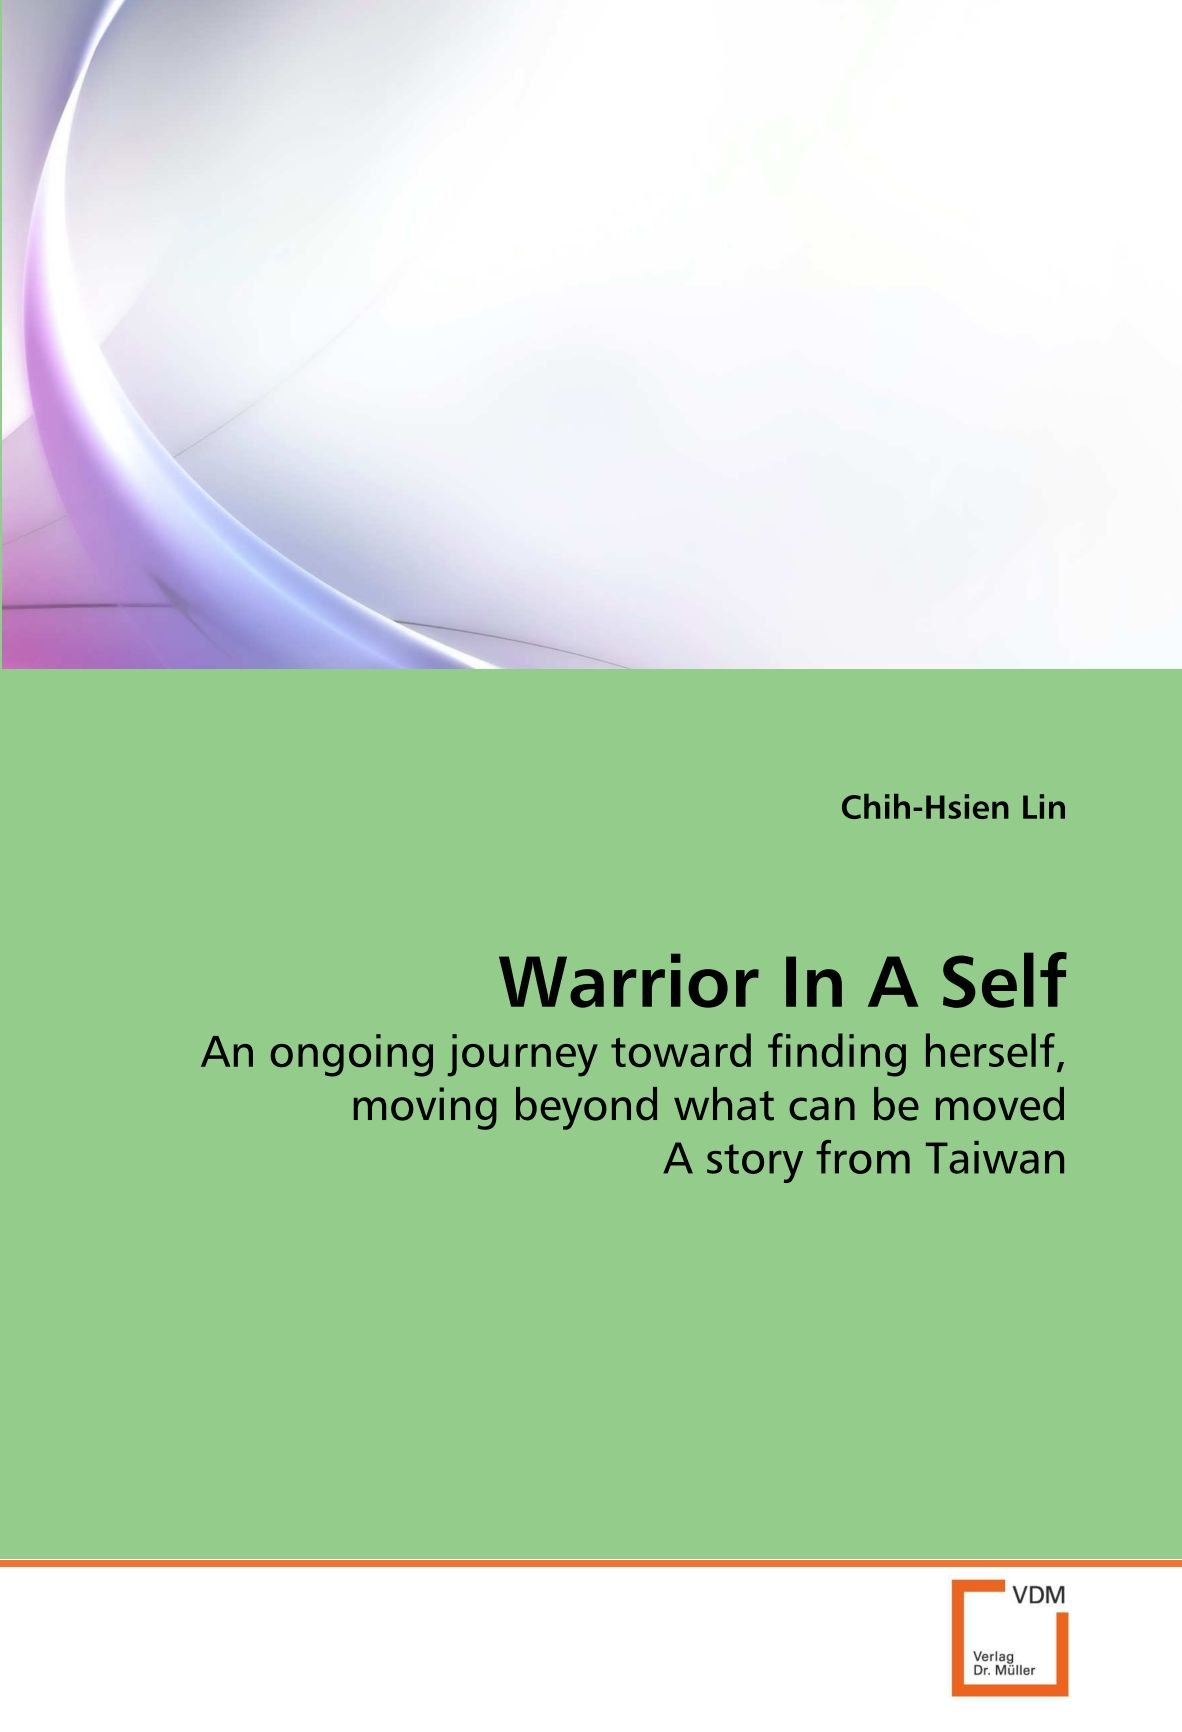 Warrior In A Self: An ongoing journey toward finding herself, moving beyond what can be moved A story from Taiwan PDF